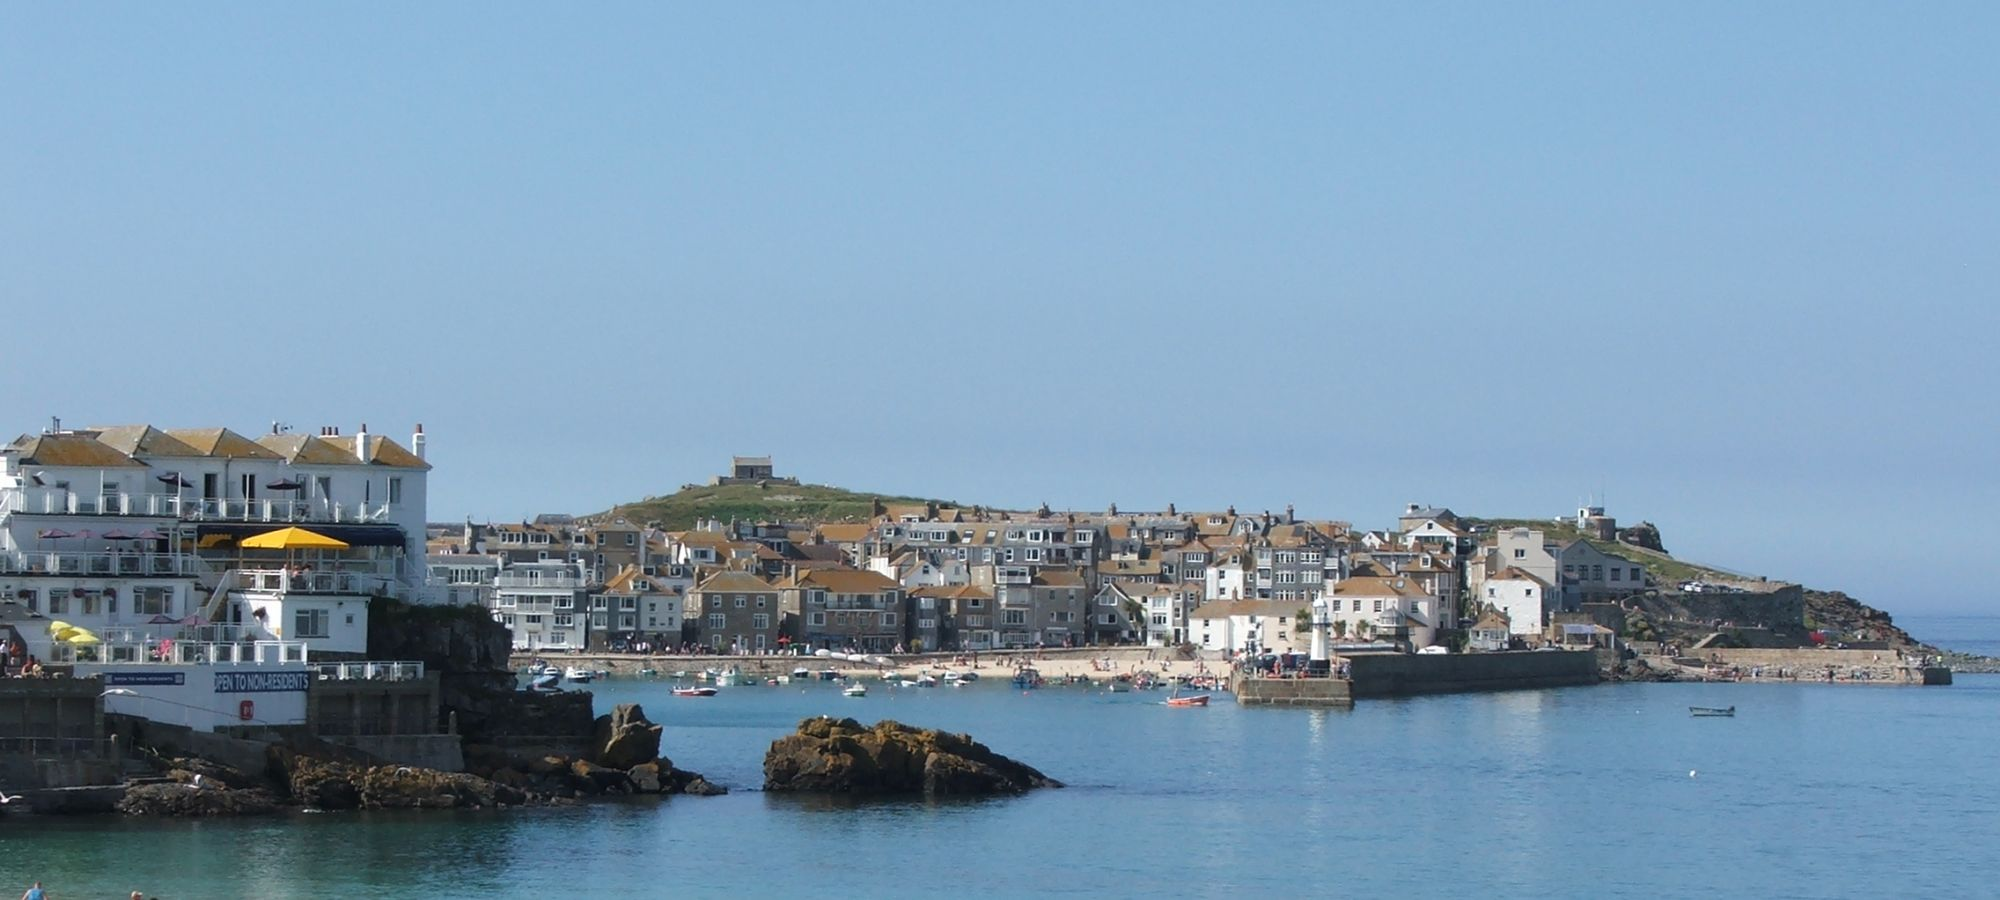 St Ives town from Porthminster beach